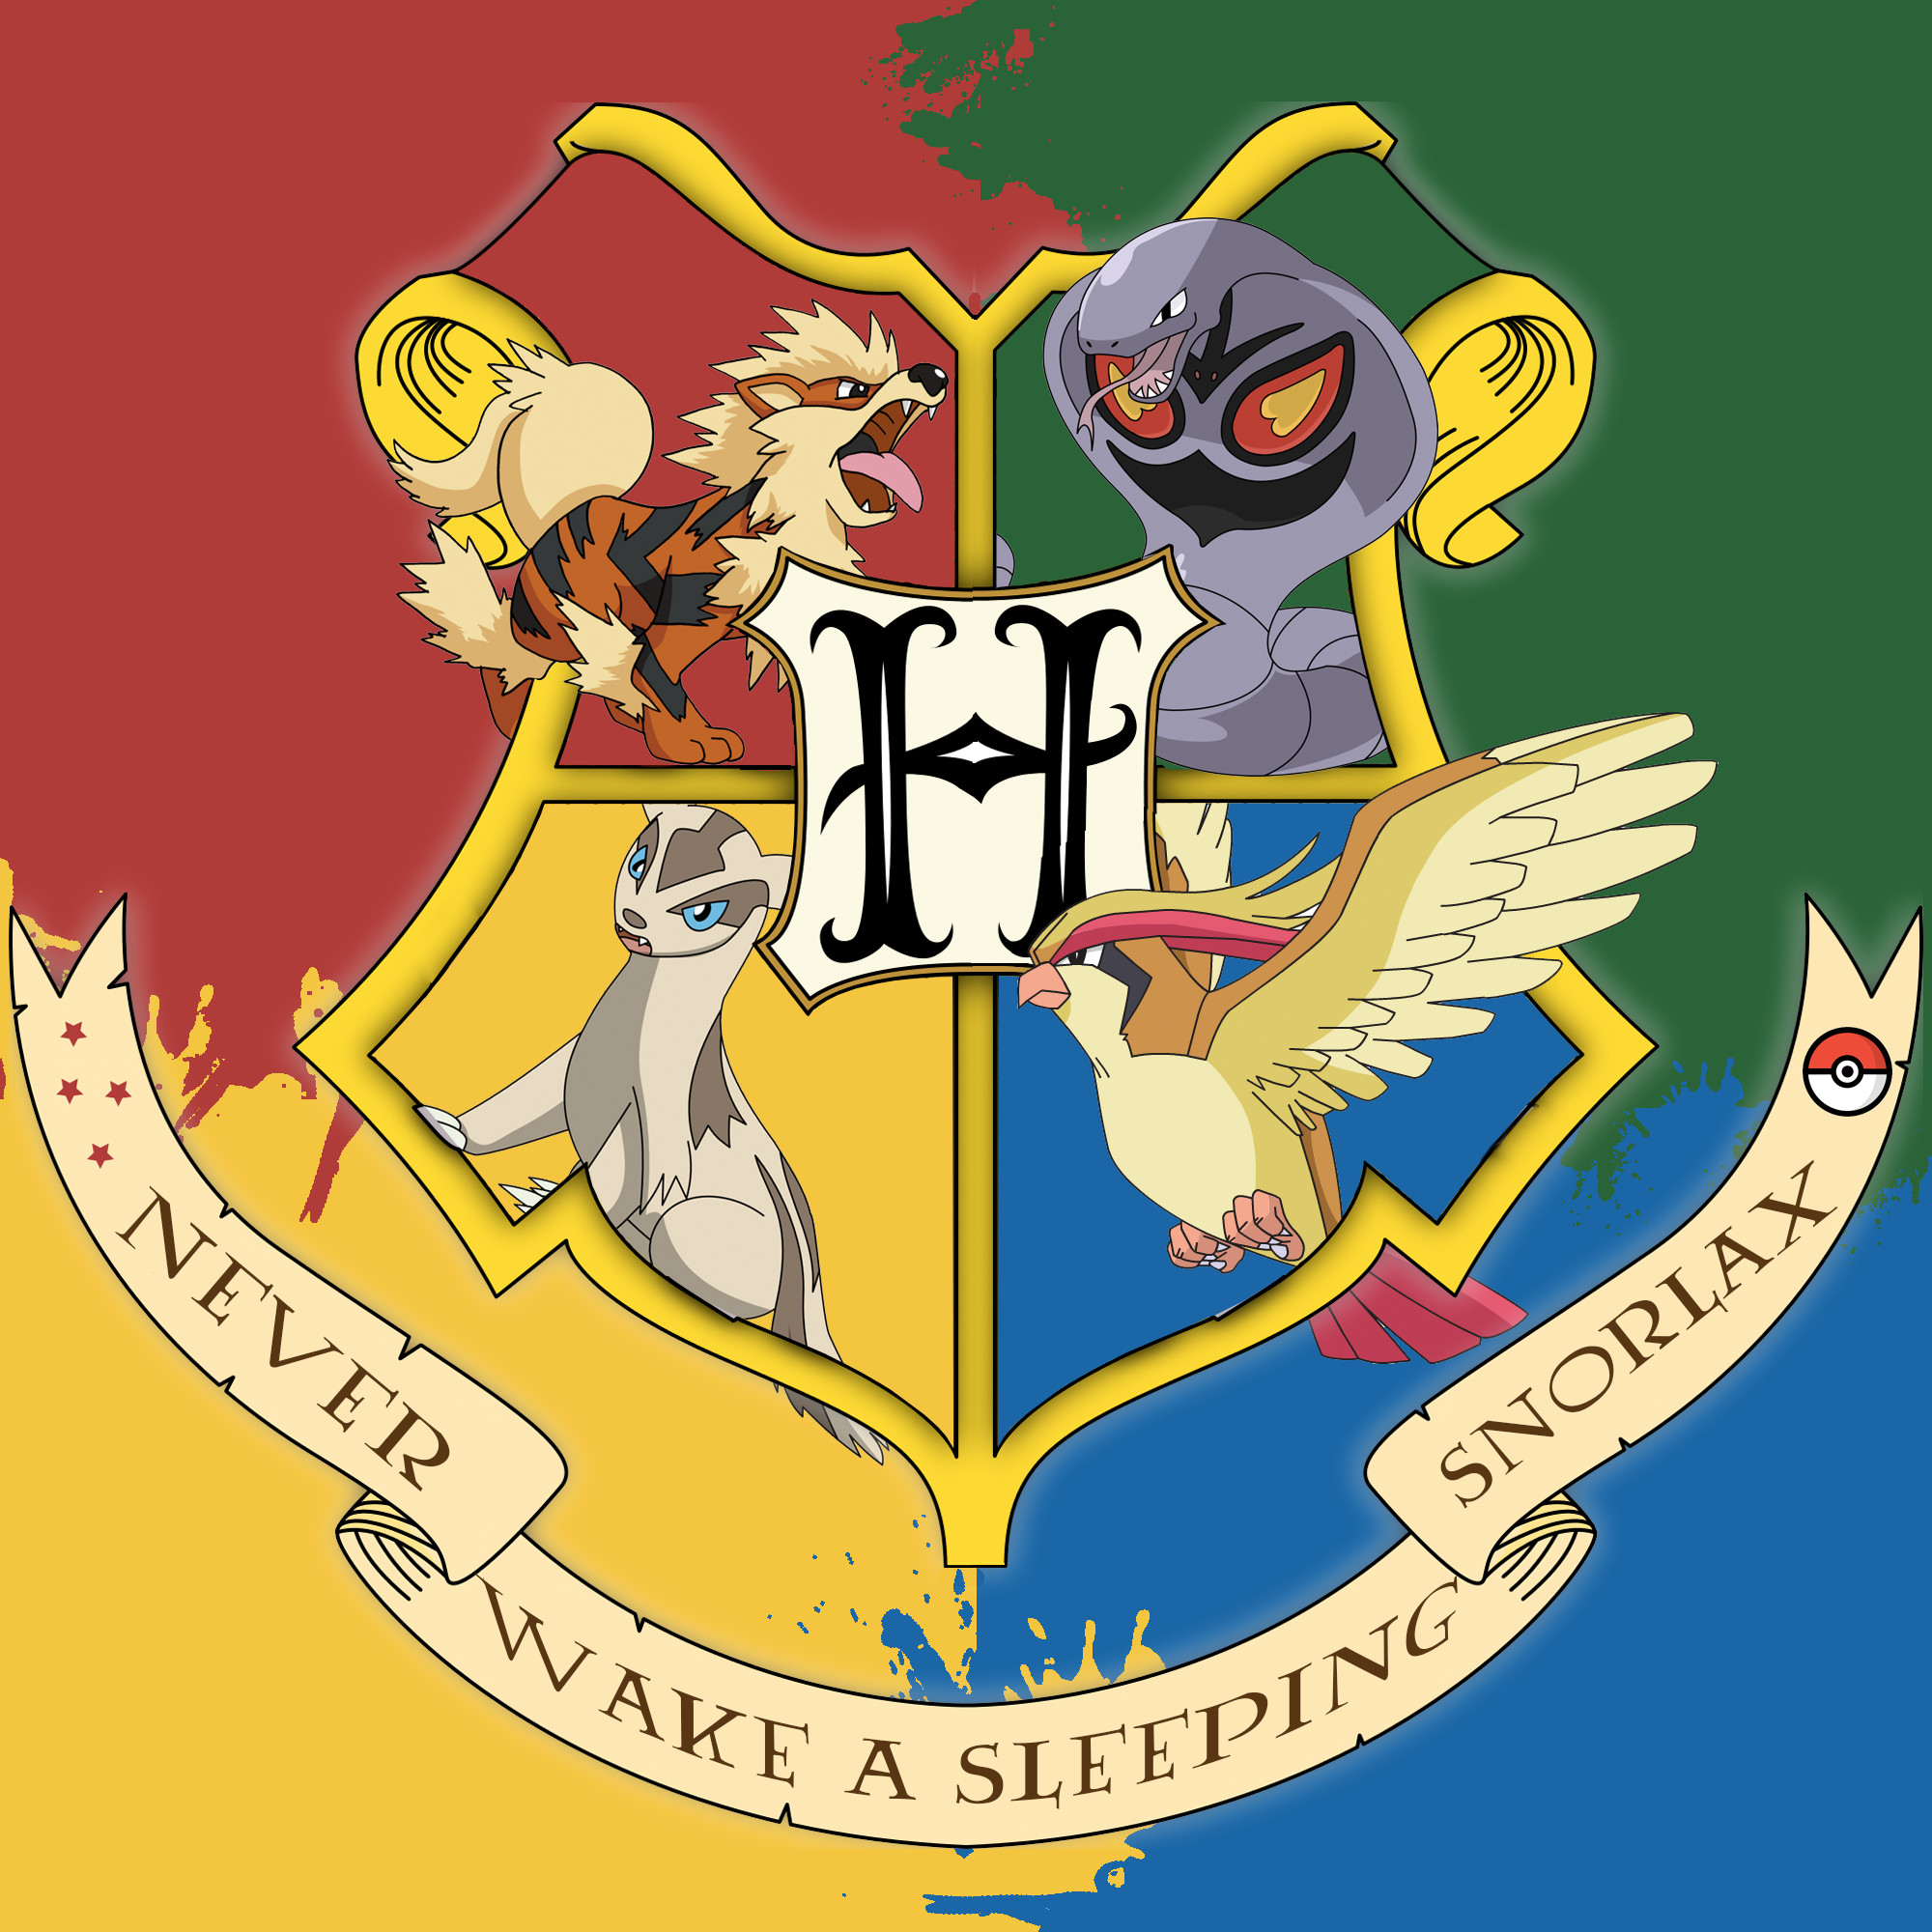 Res: 2000x2000, I made this for all the Pokémon & Harry Potter fans out there!